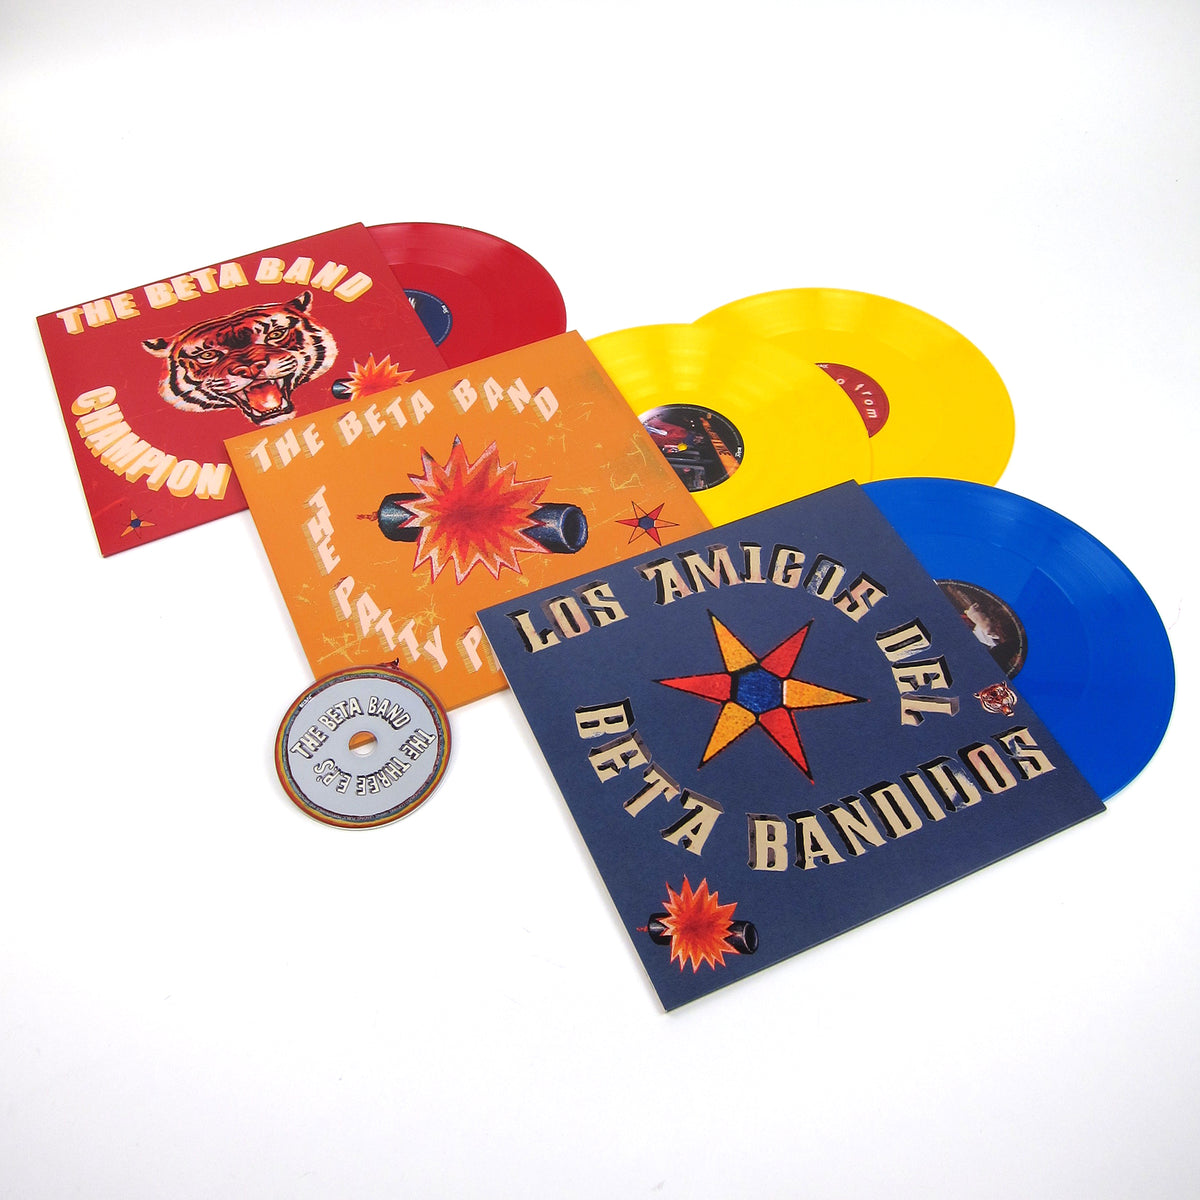 The Beta Band: The Three EP's (Colored Vinyl) Vinyl 4LP+CD Boxset